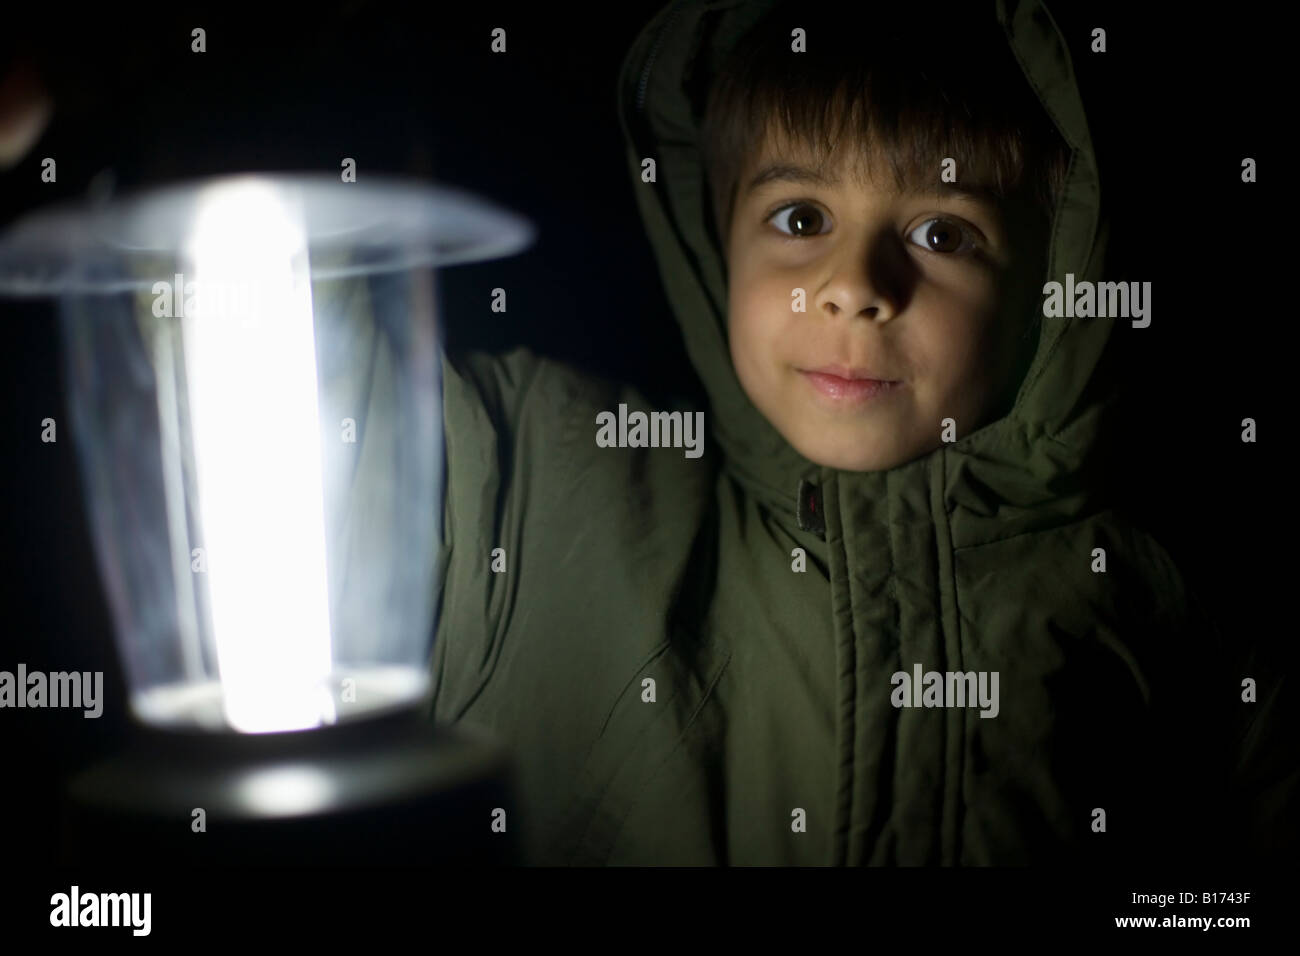 Boy aged six holds up electric lantern wearing a hooded green coat - Stock Image